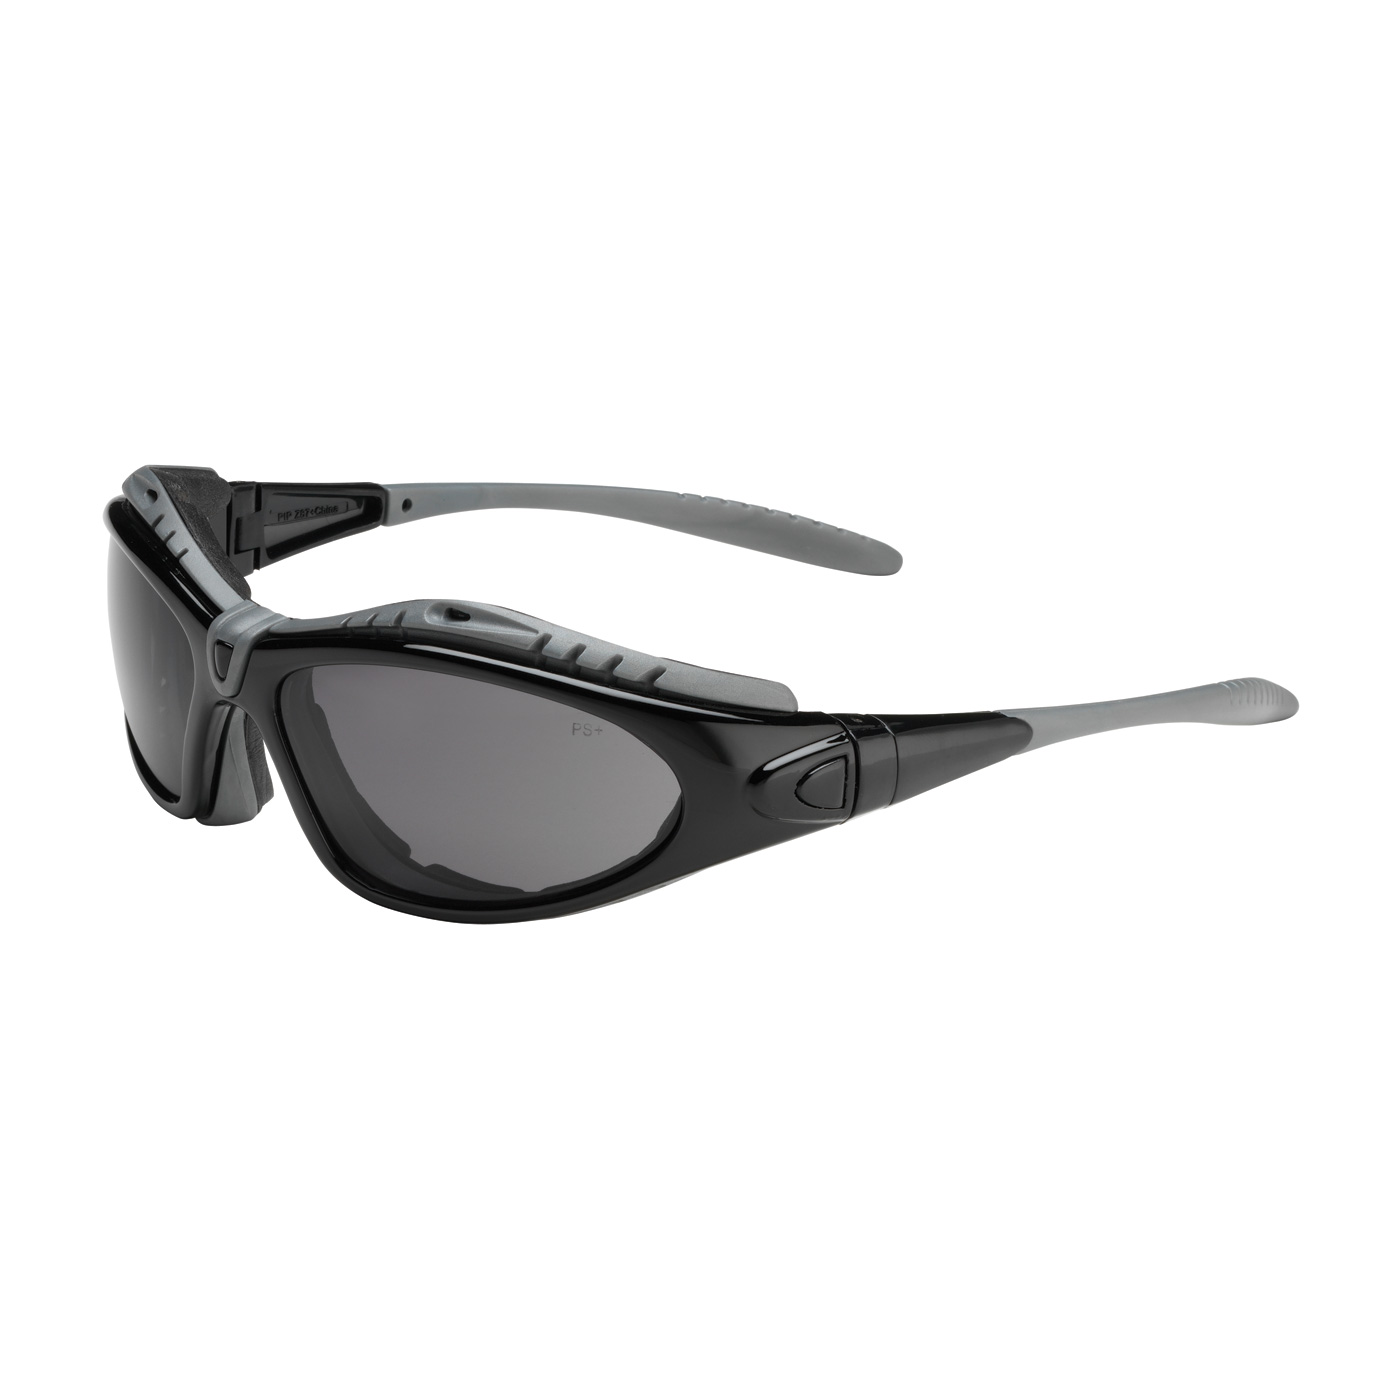 PIPR 250-50-0521 Full Frame Safety Glasses with Black Frame, Foam Padding, Gray Lens and Anti-Scratch / FogLess® 3Sixty™ Coating